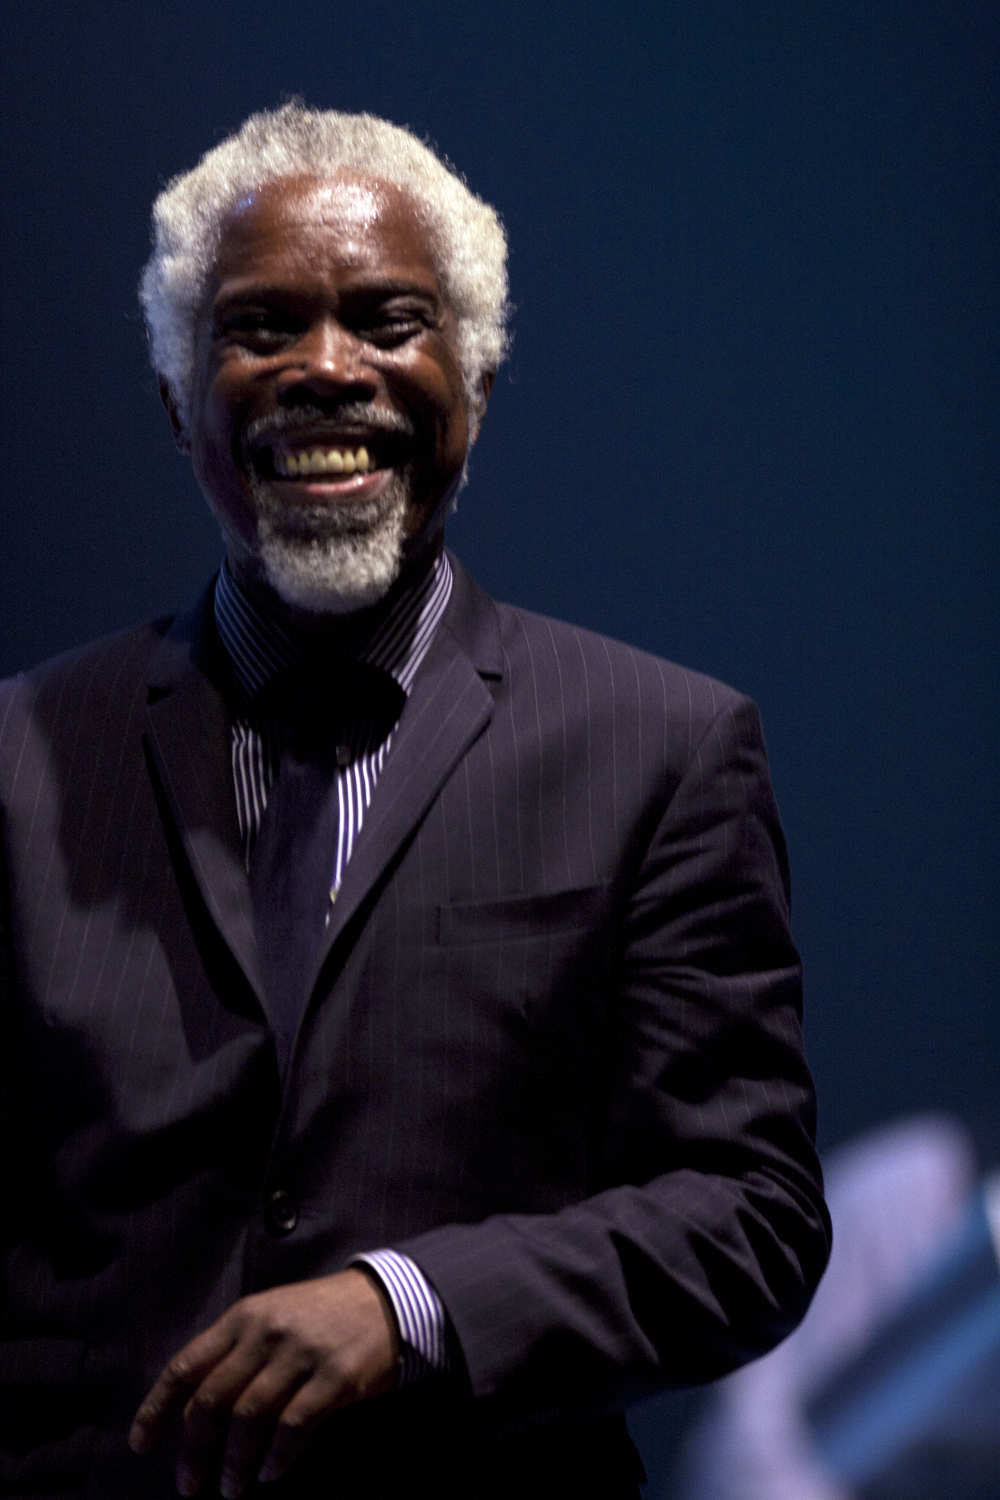 billy ocean - photo #25